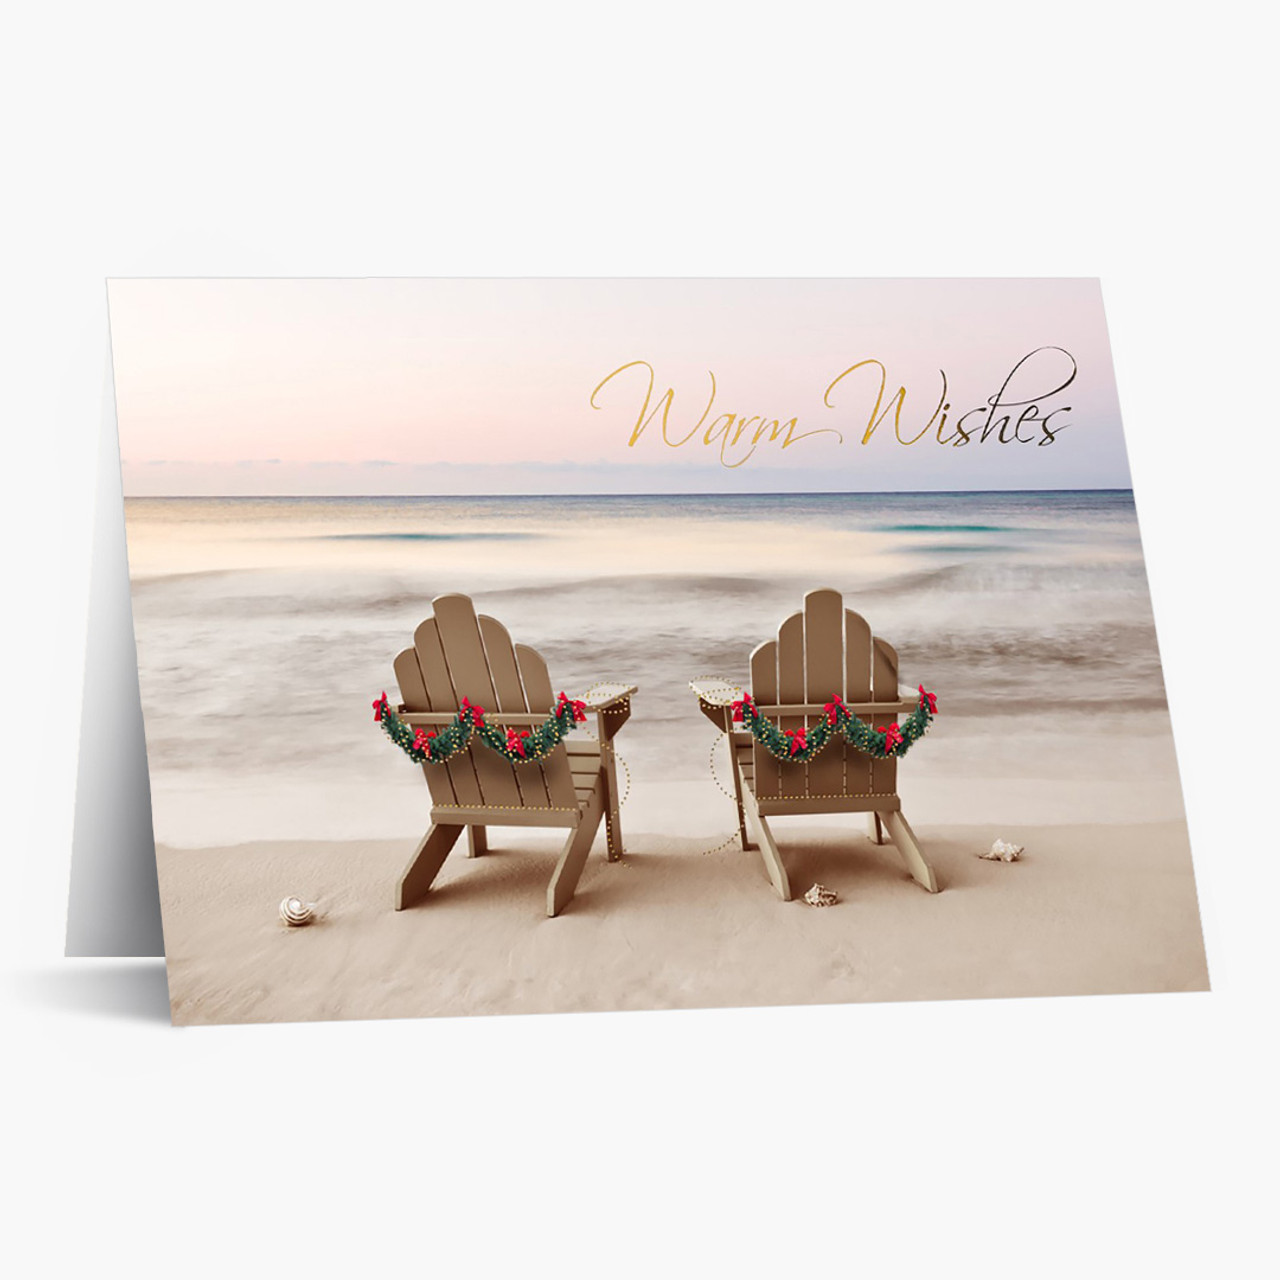 Wishes of Warmth Christmas Card